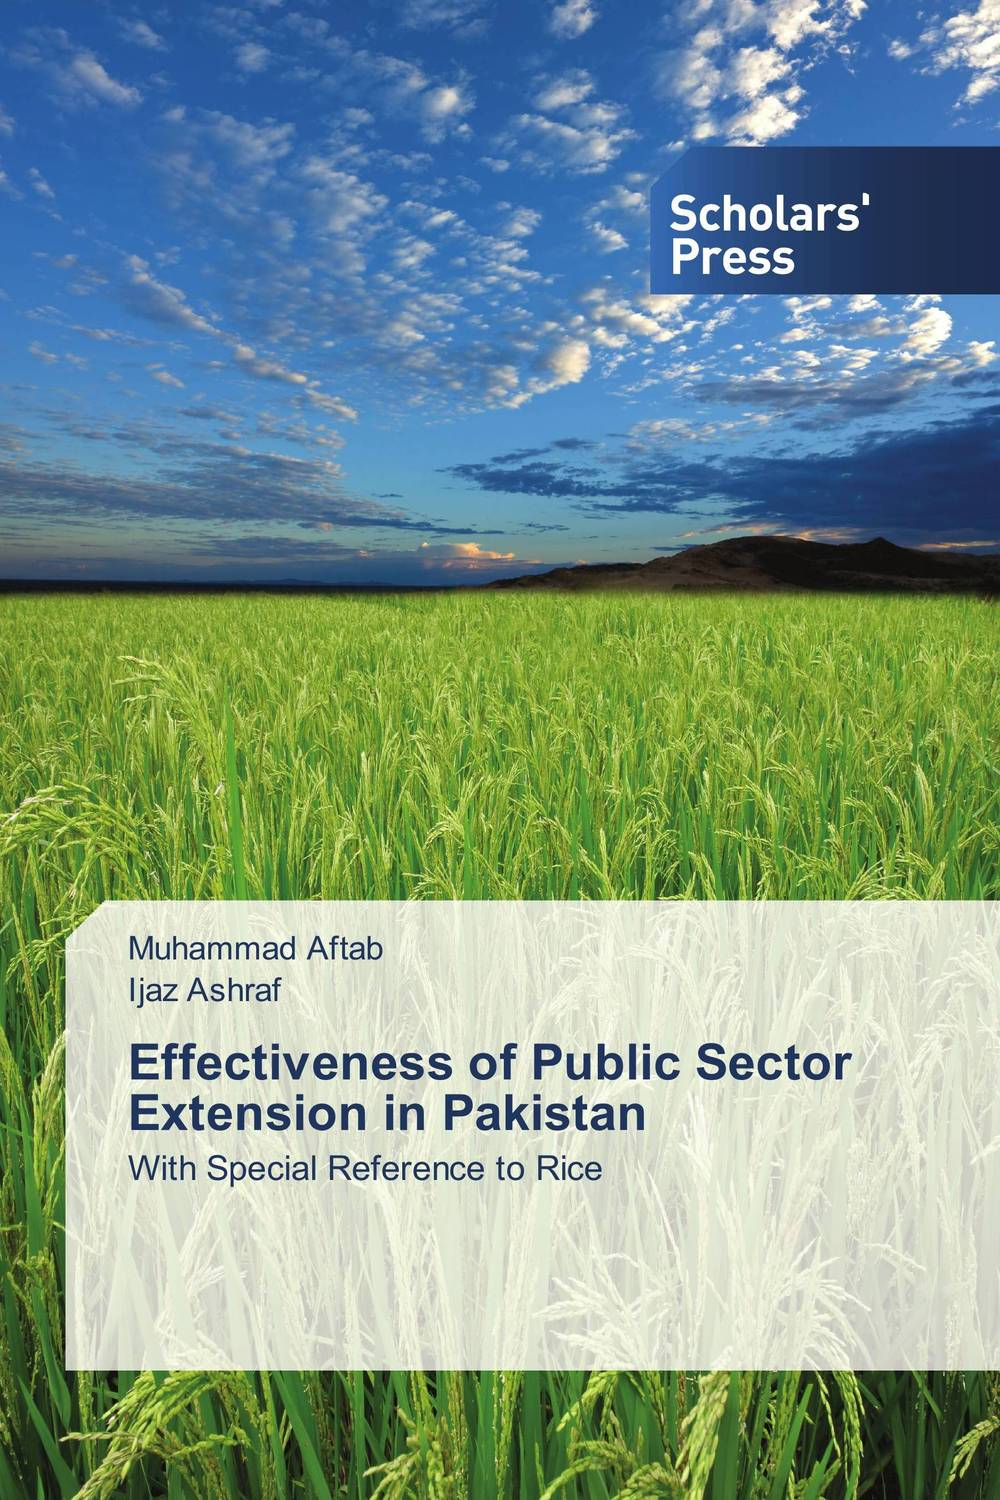 Effectiveness of Public Sector Extension in Pakistan